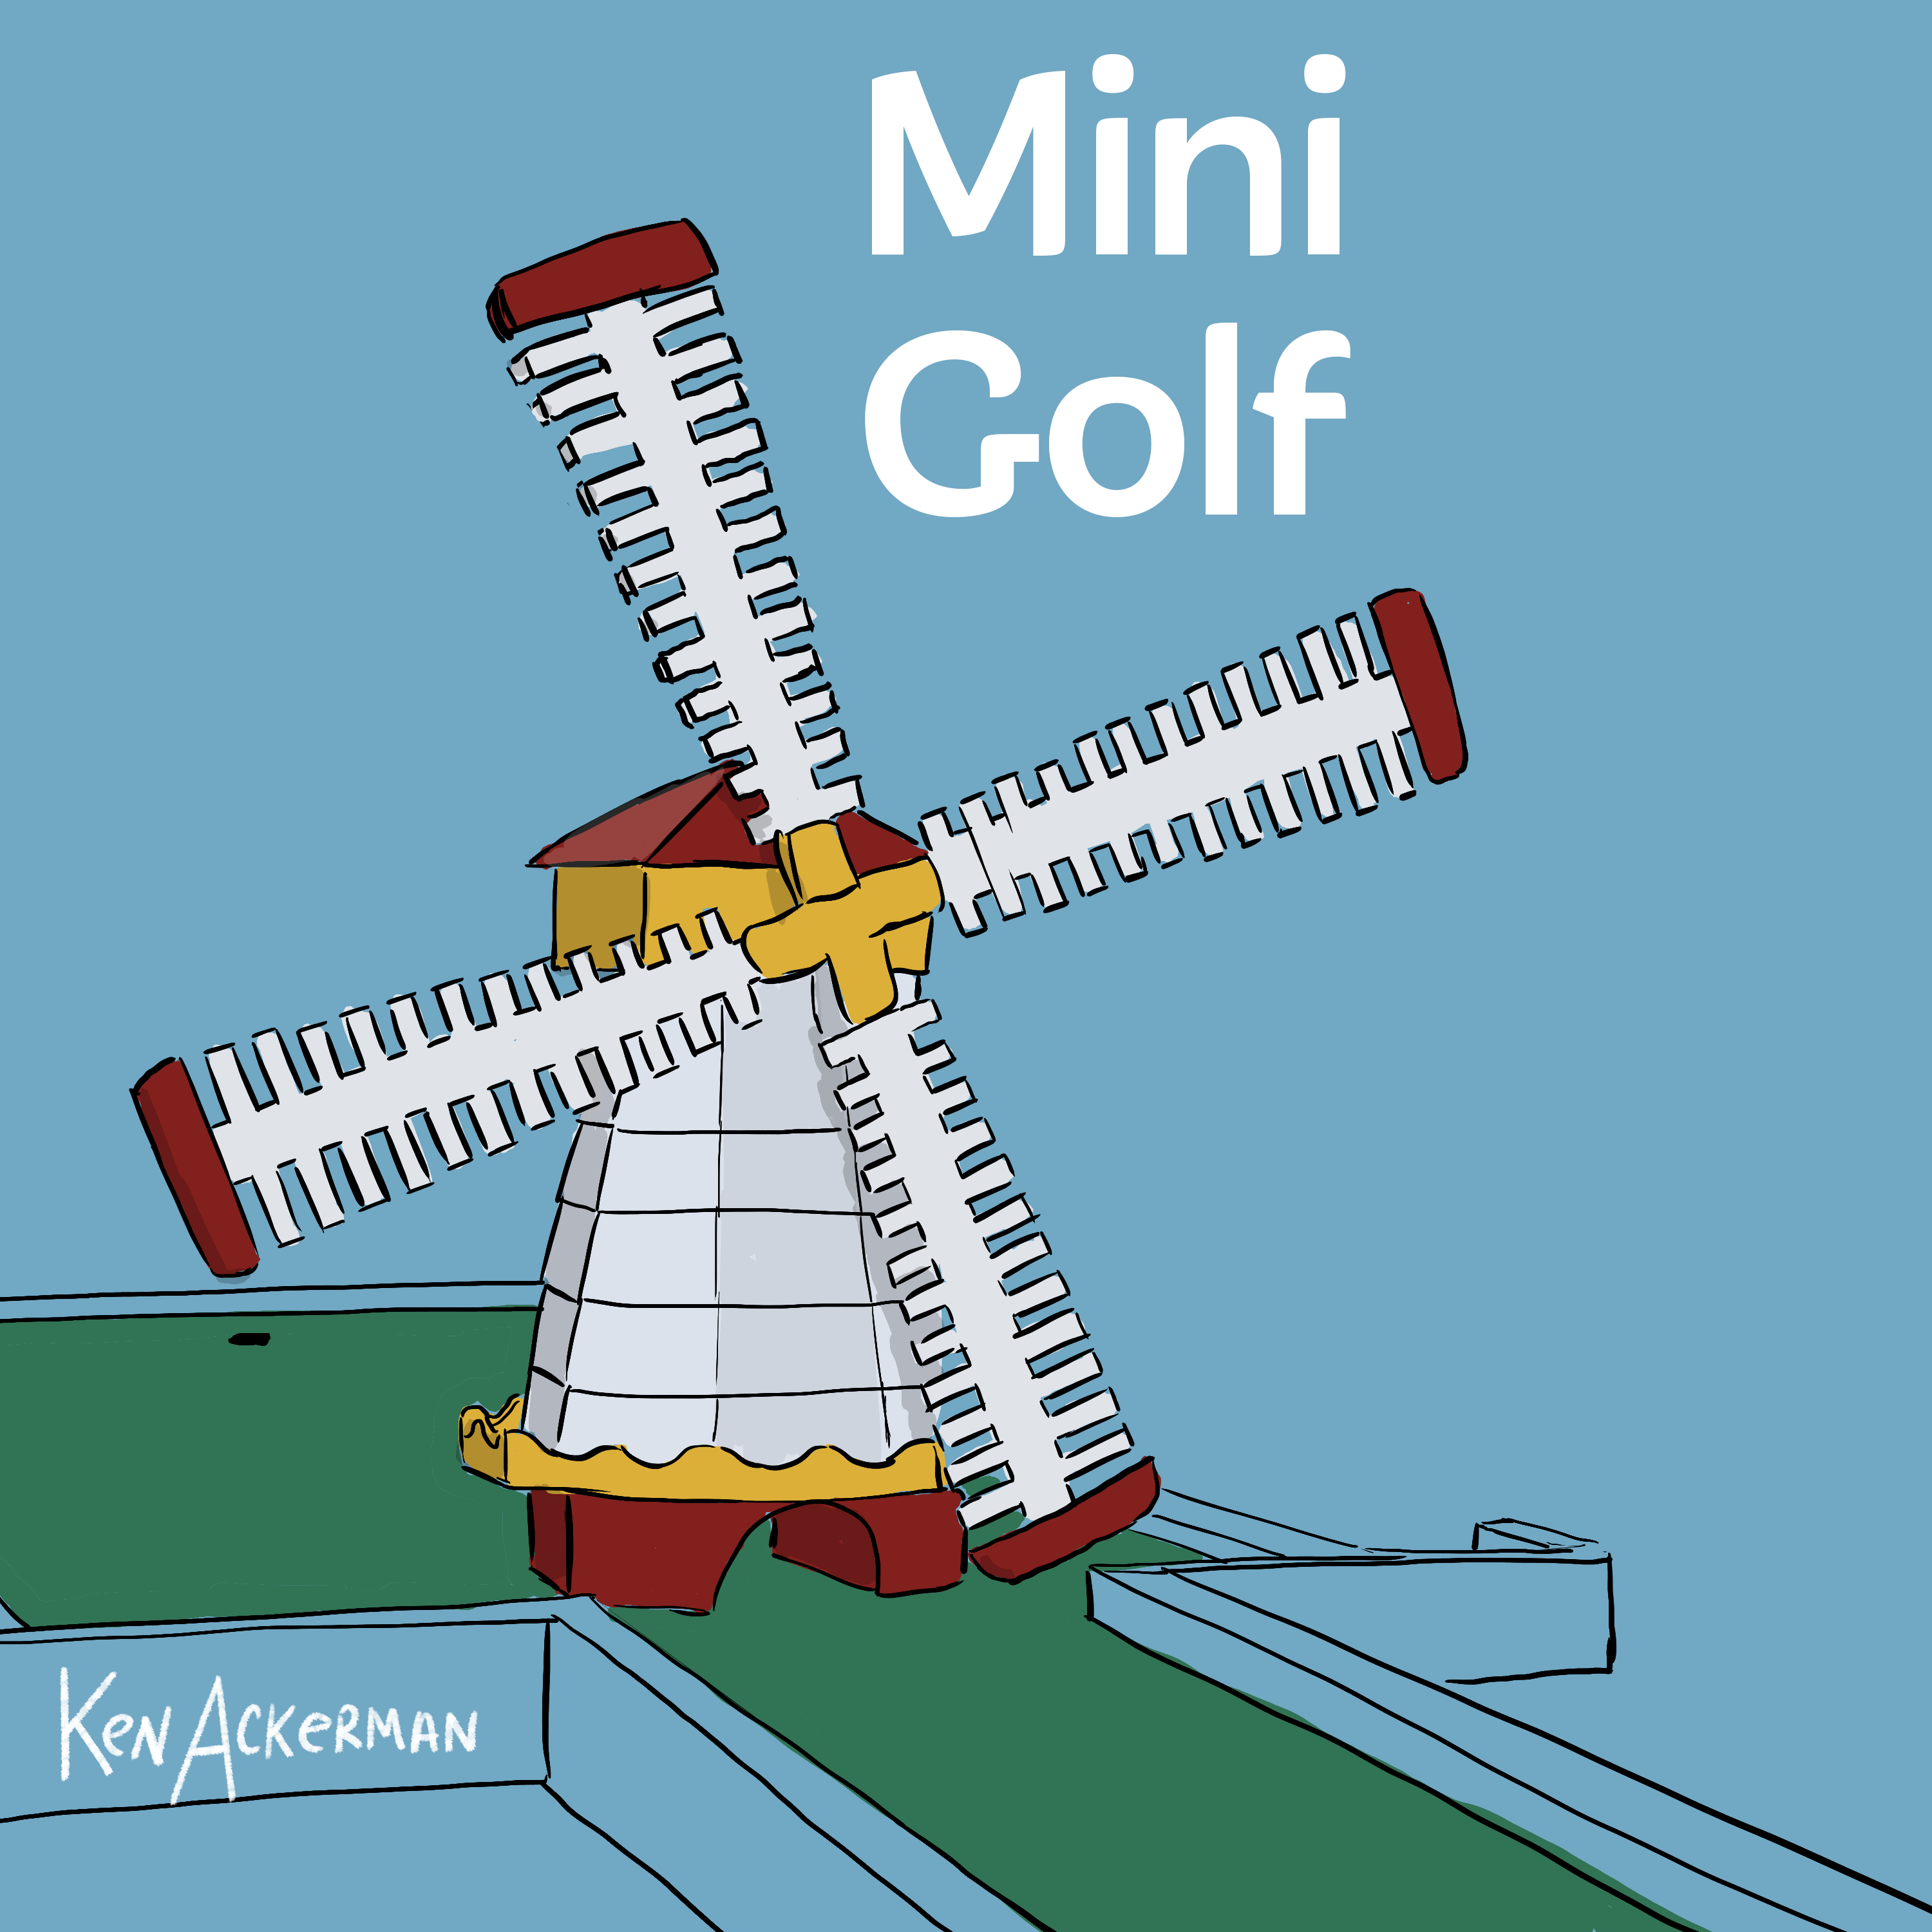 843 - Mini Golf Memories